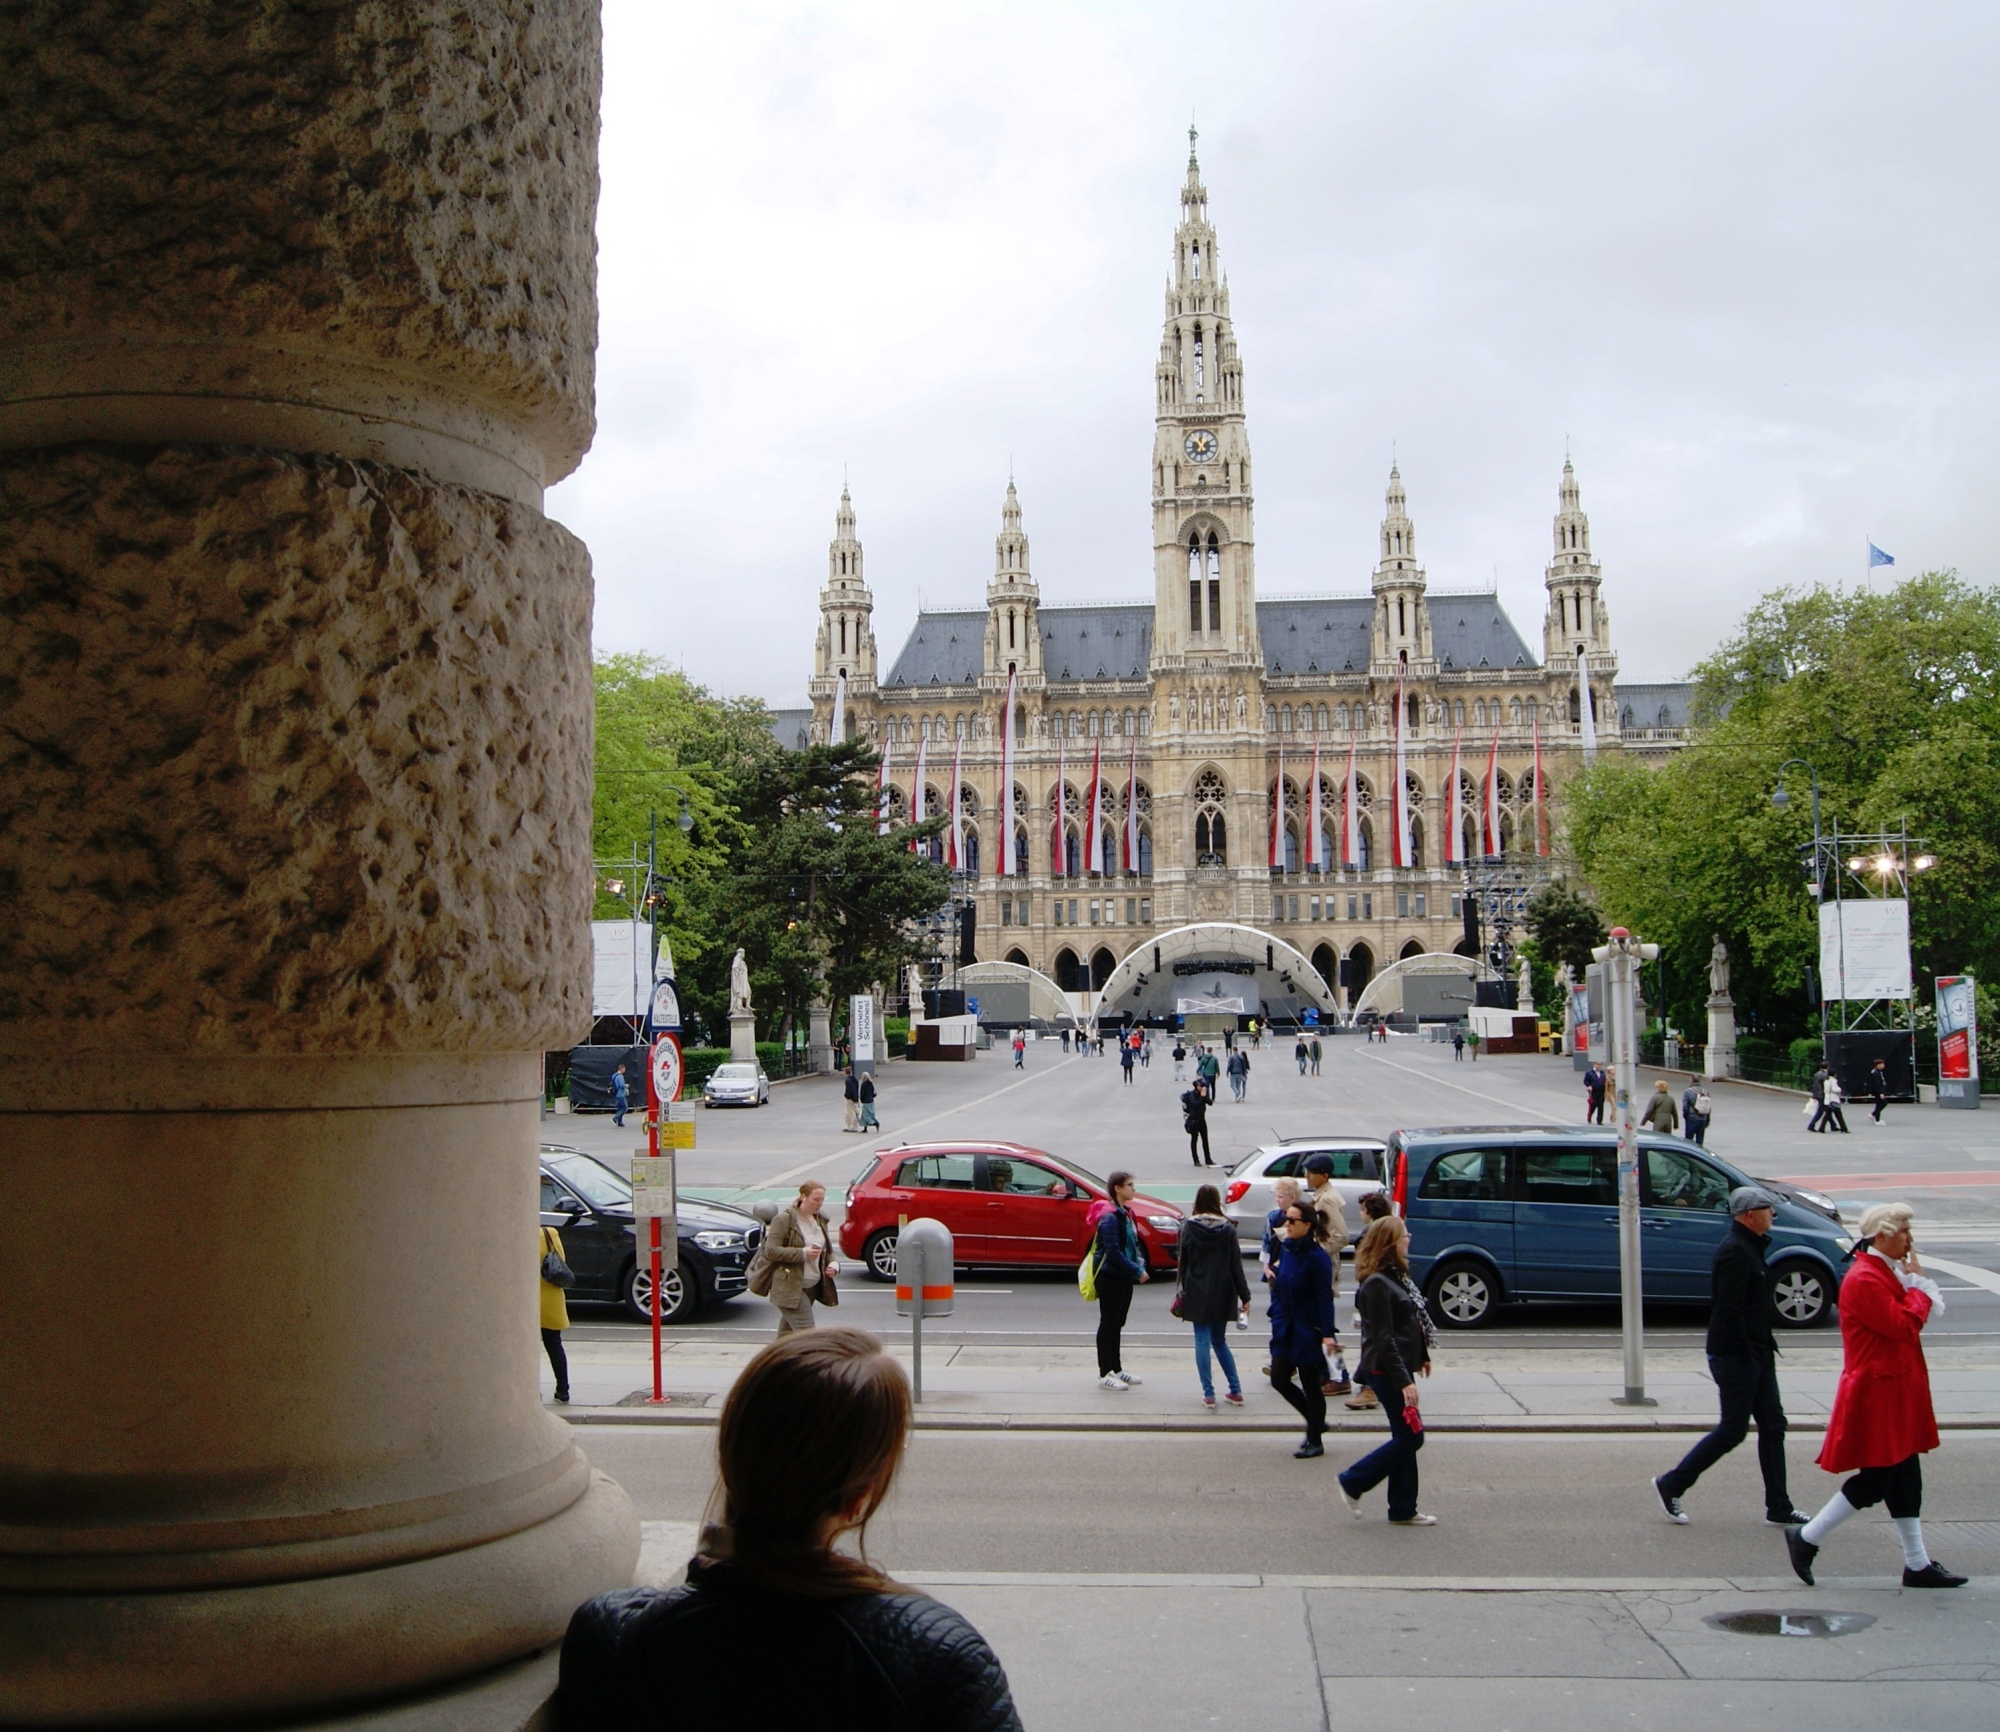 View of Rathaus from Burgtheater